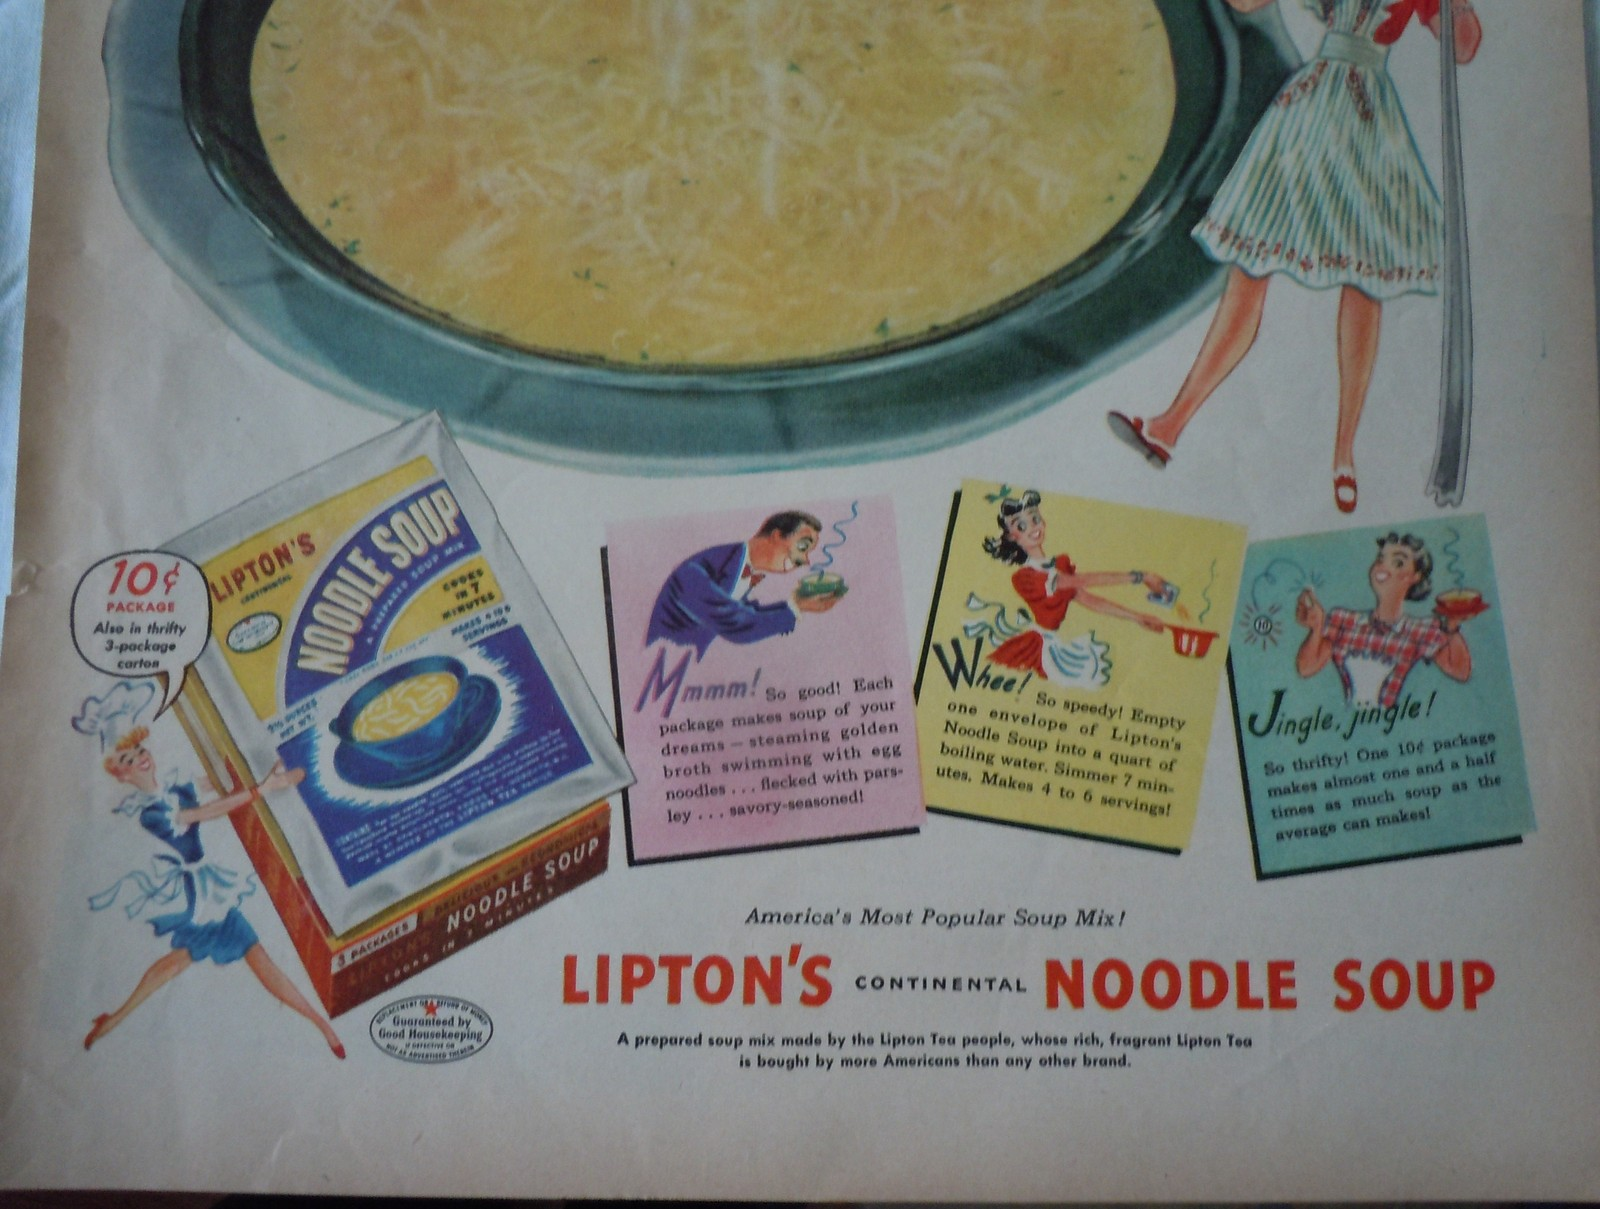 LIpton's Continental Noodle Soup Advertising Print Ad Art 1940s  image 3